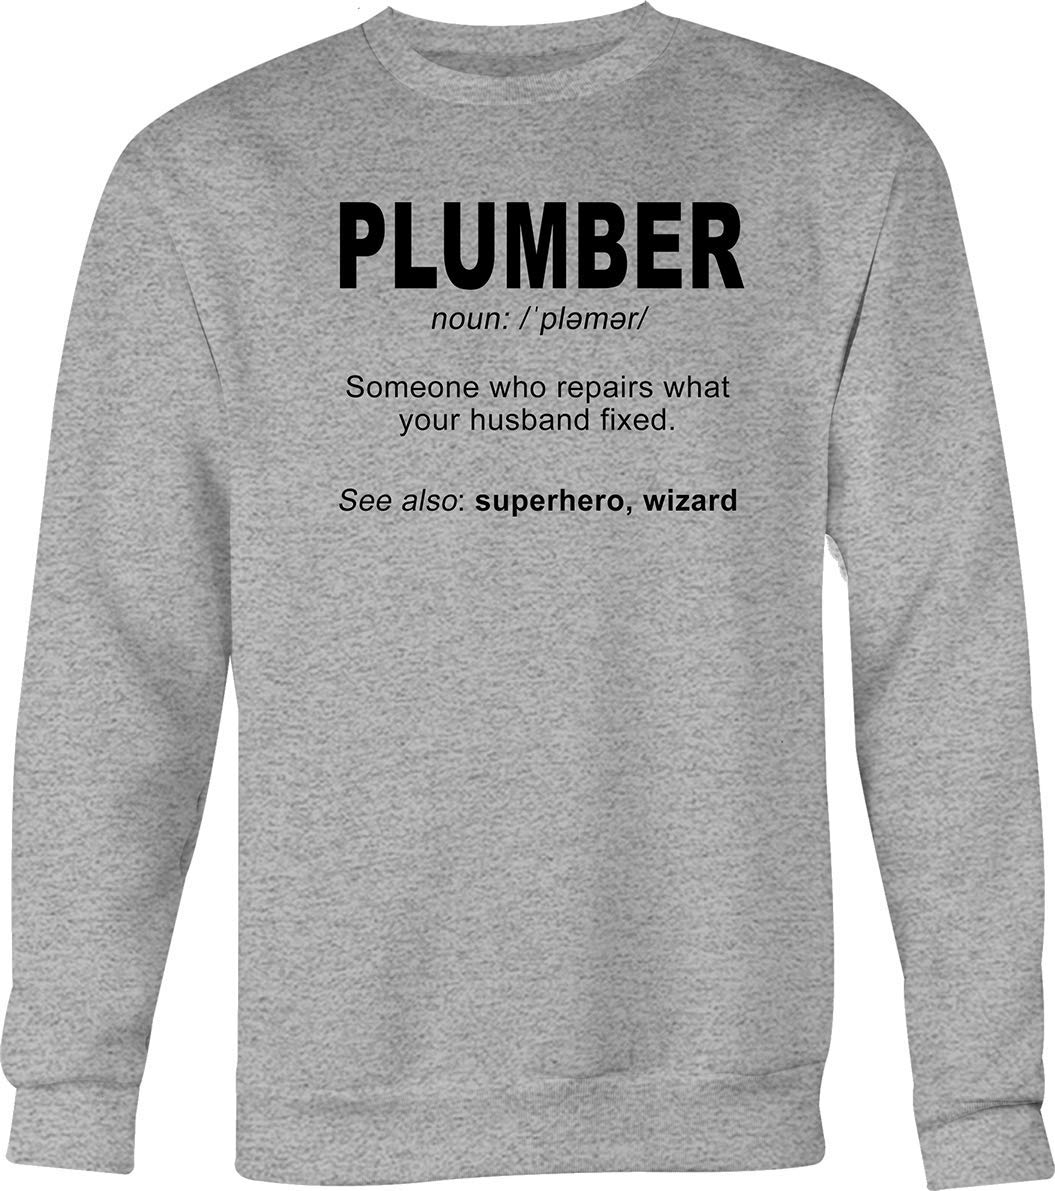 Plumber Dictionary Definition Repairs What Your Husband Fixed Tshirt Large